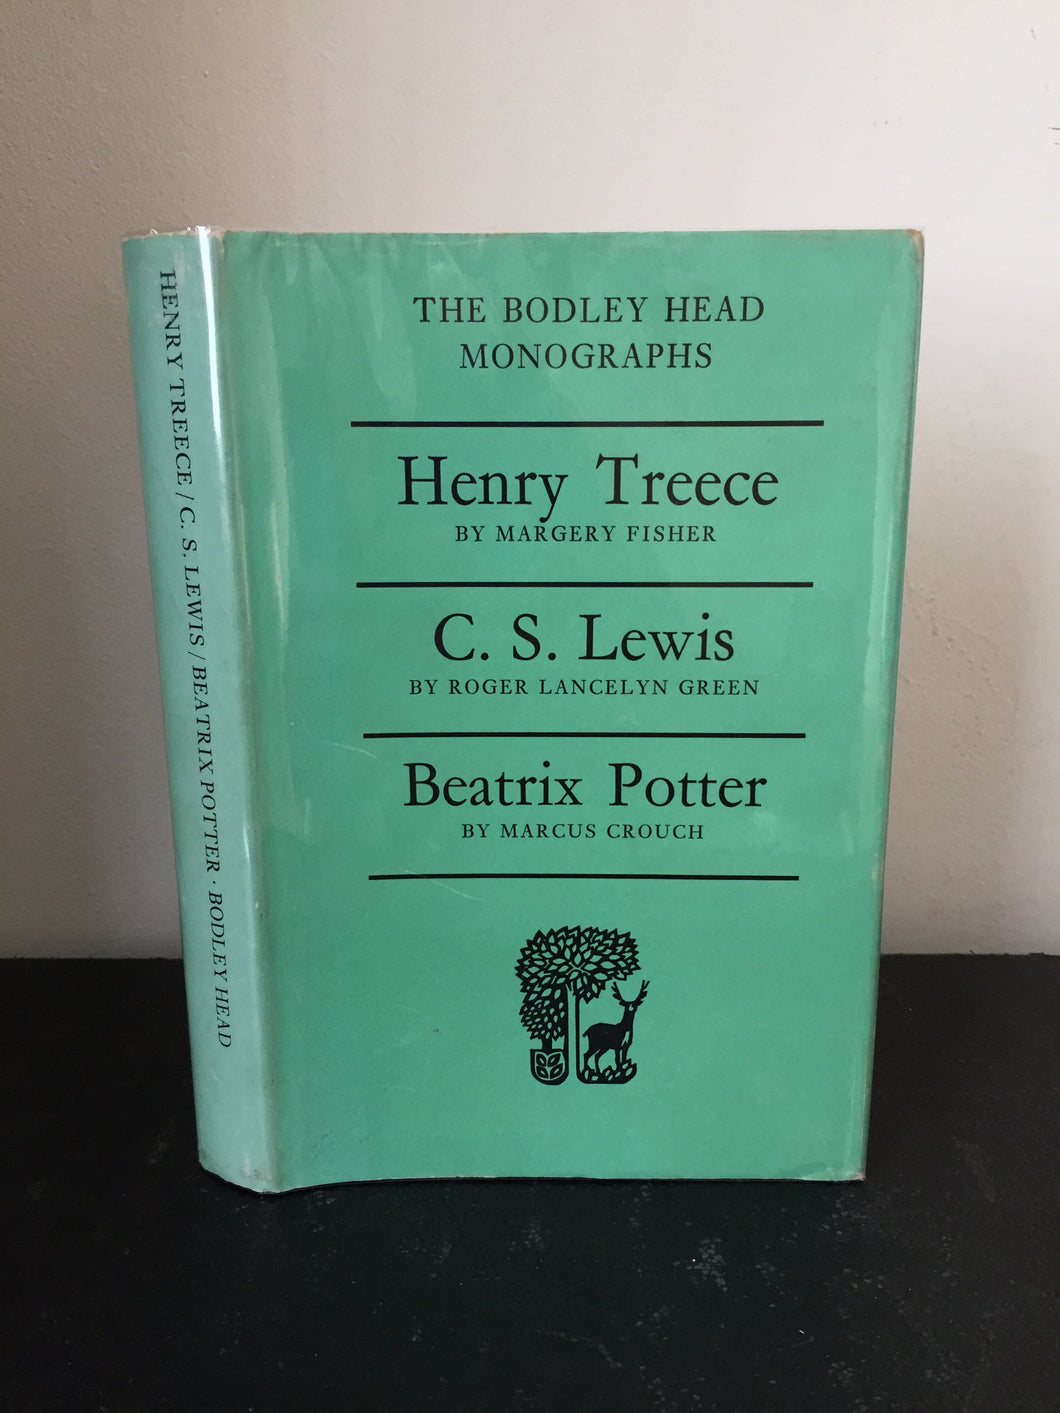 The Bodley Head Monographs: Henry Treece, C.S. Lewis & Beatrice Potter